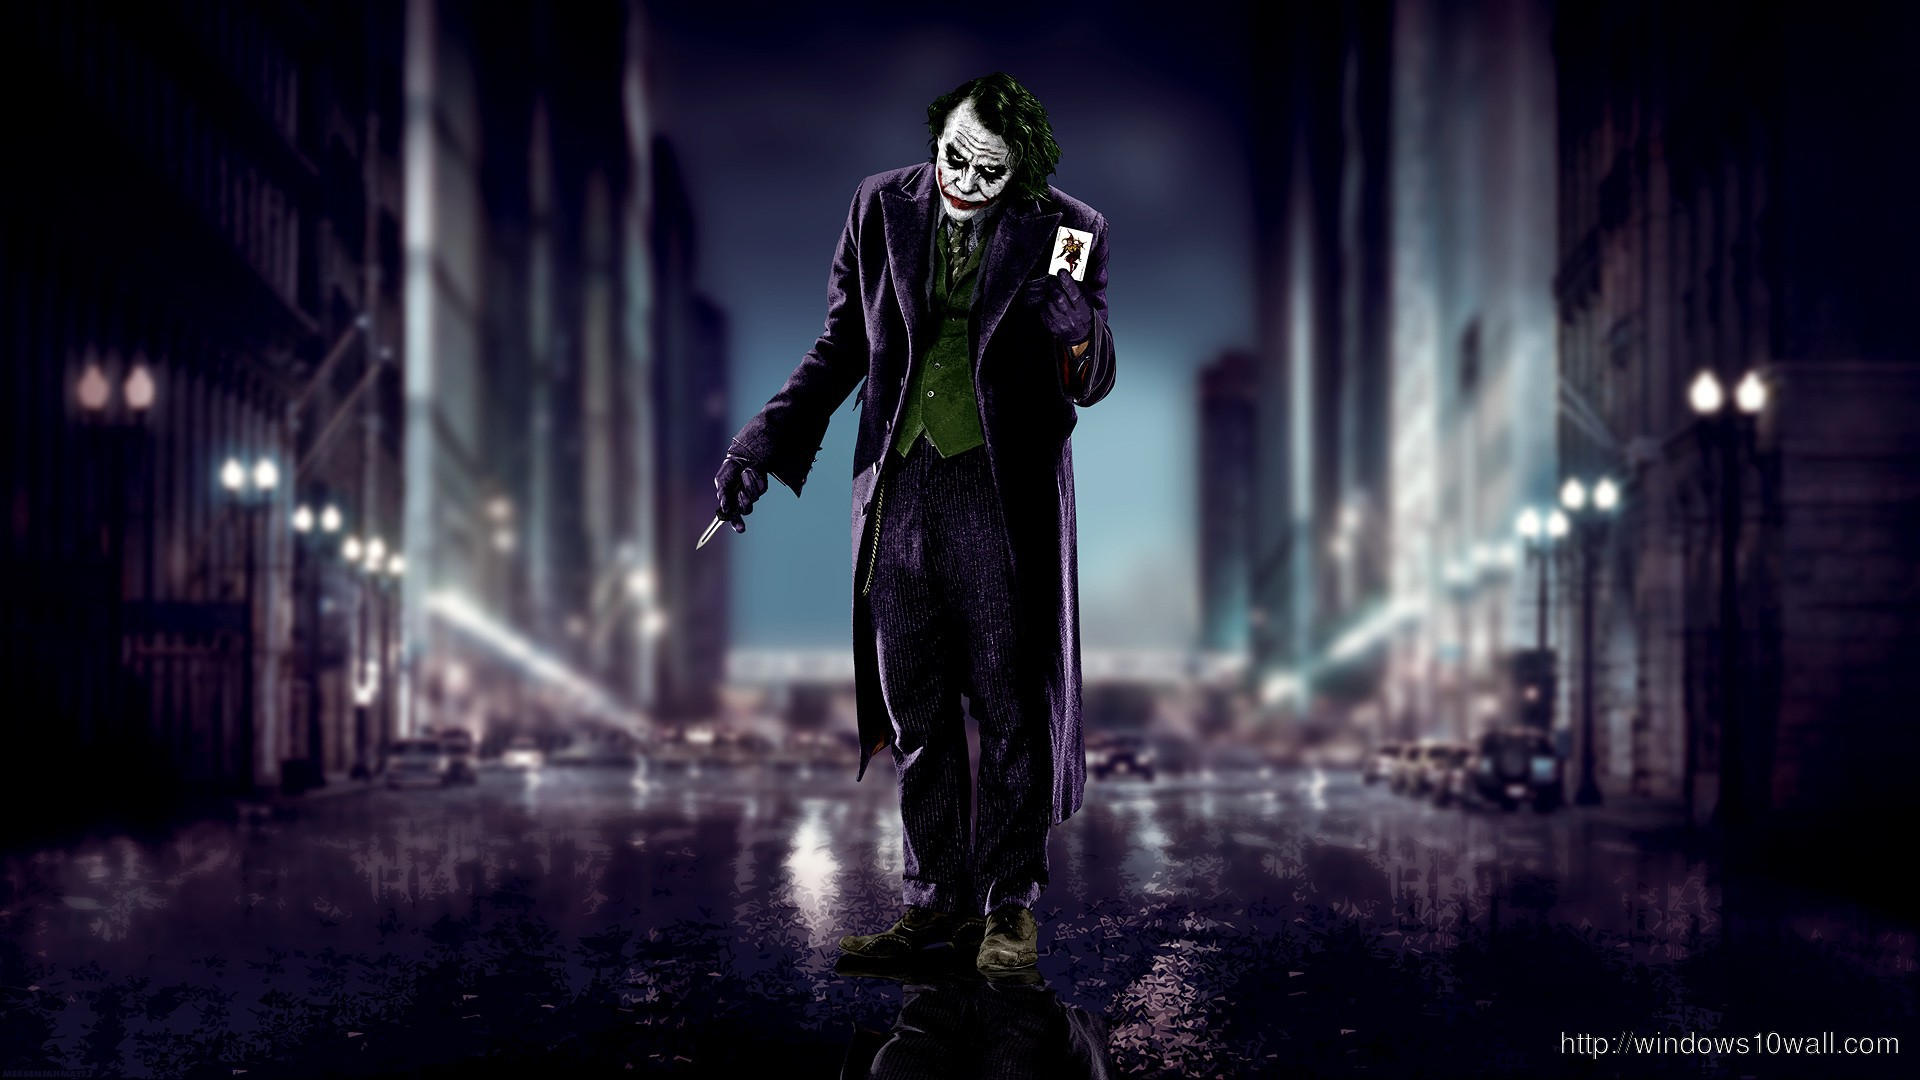 Joker In The Dark Knight Rises Movie Wallpaper ⋆ Windows